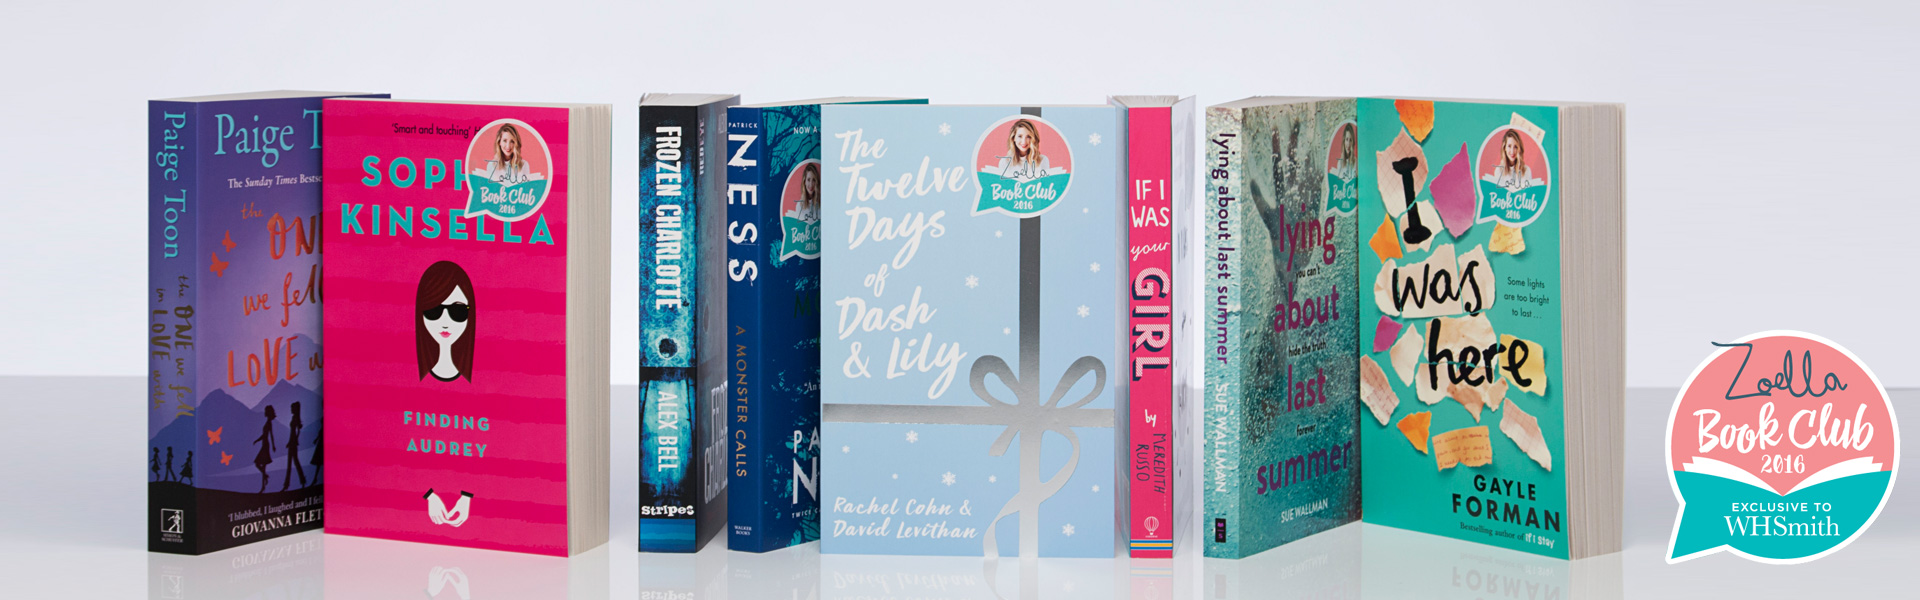 Vote Now For Your Zoella Book Club Autumn 2016 WINNER!